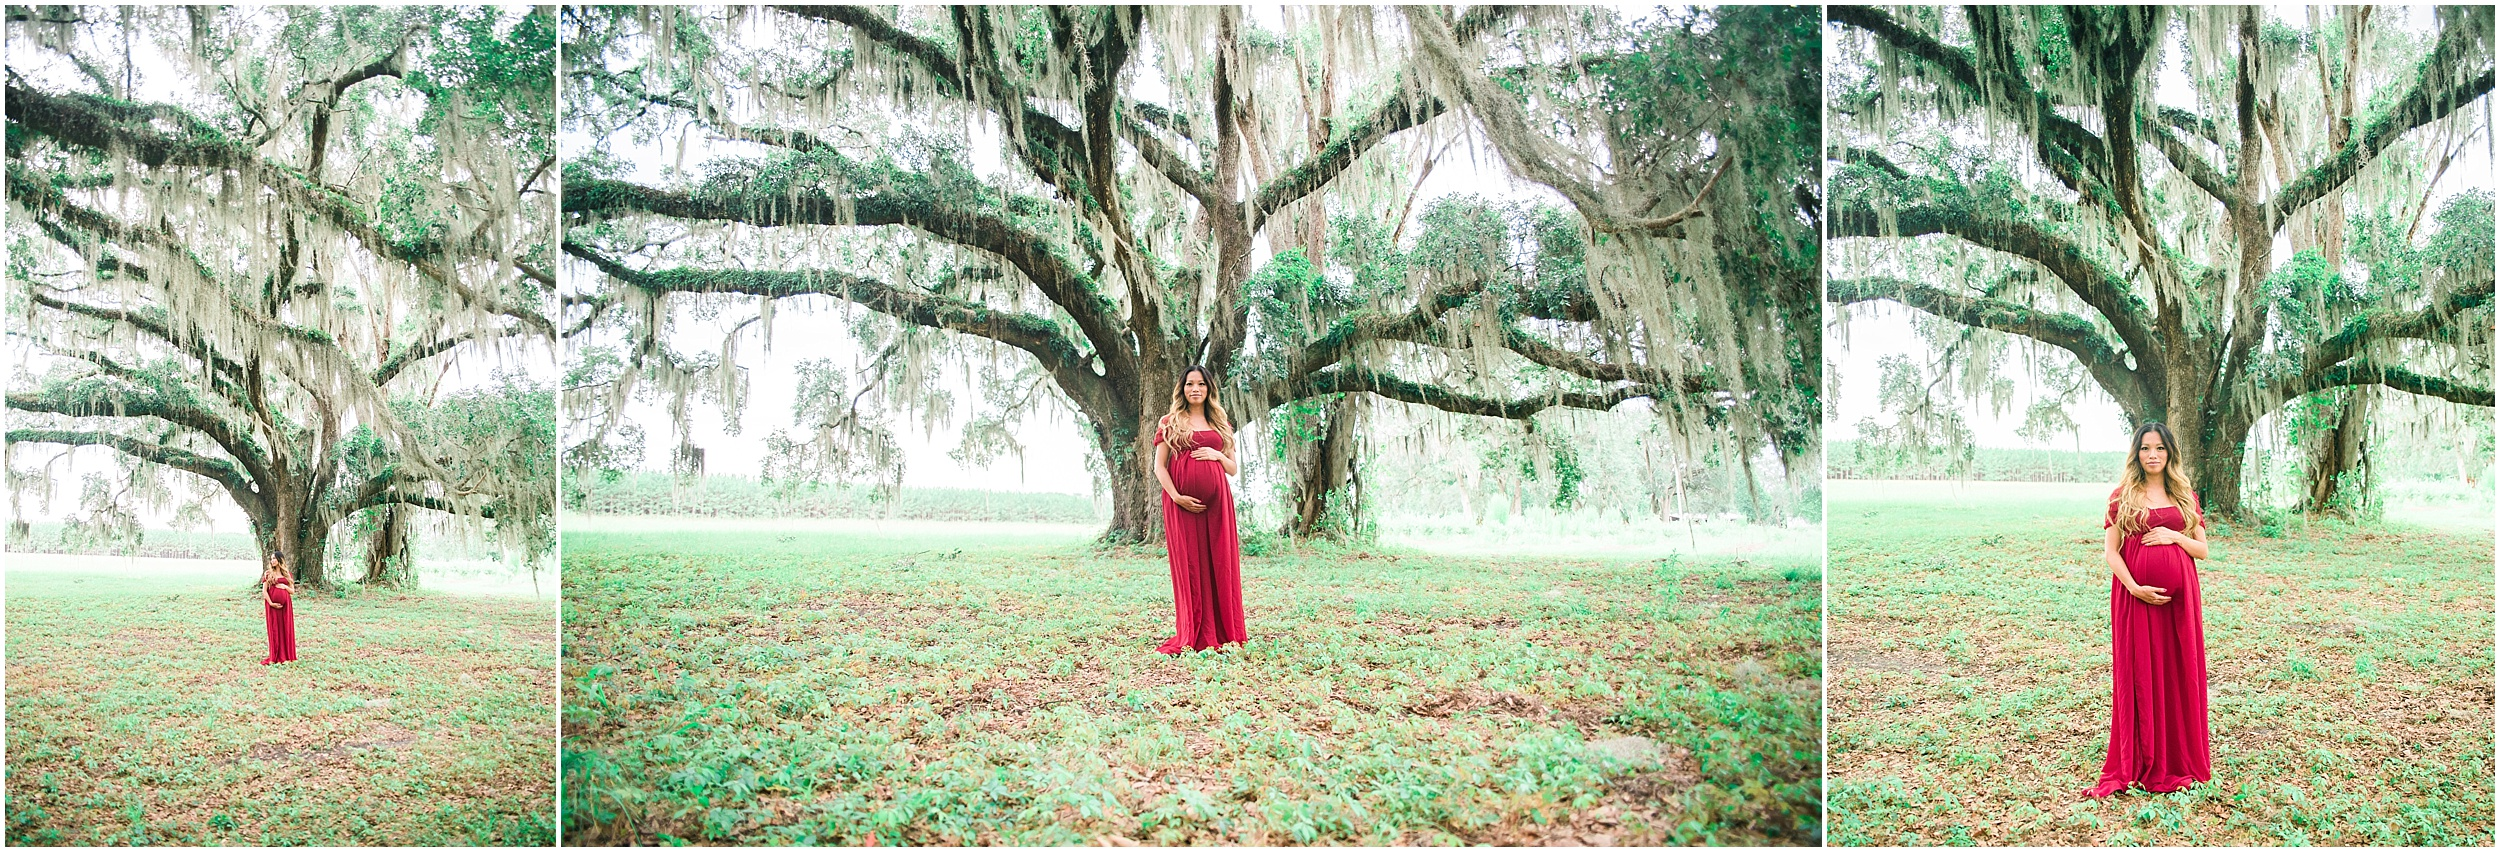 Linda & Thomas Maternity Session in Quitman, Georgia_0018.jpg